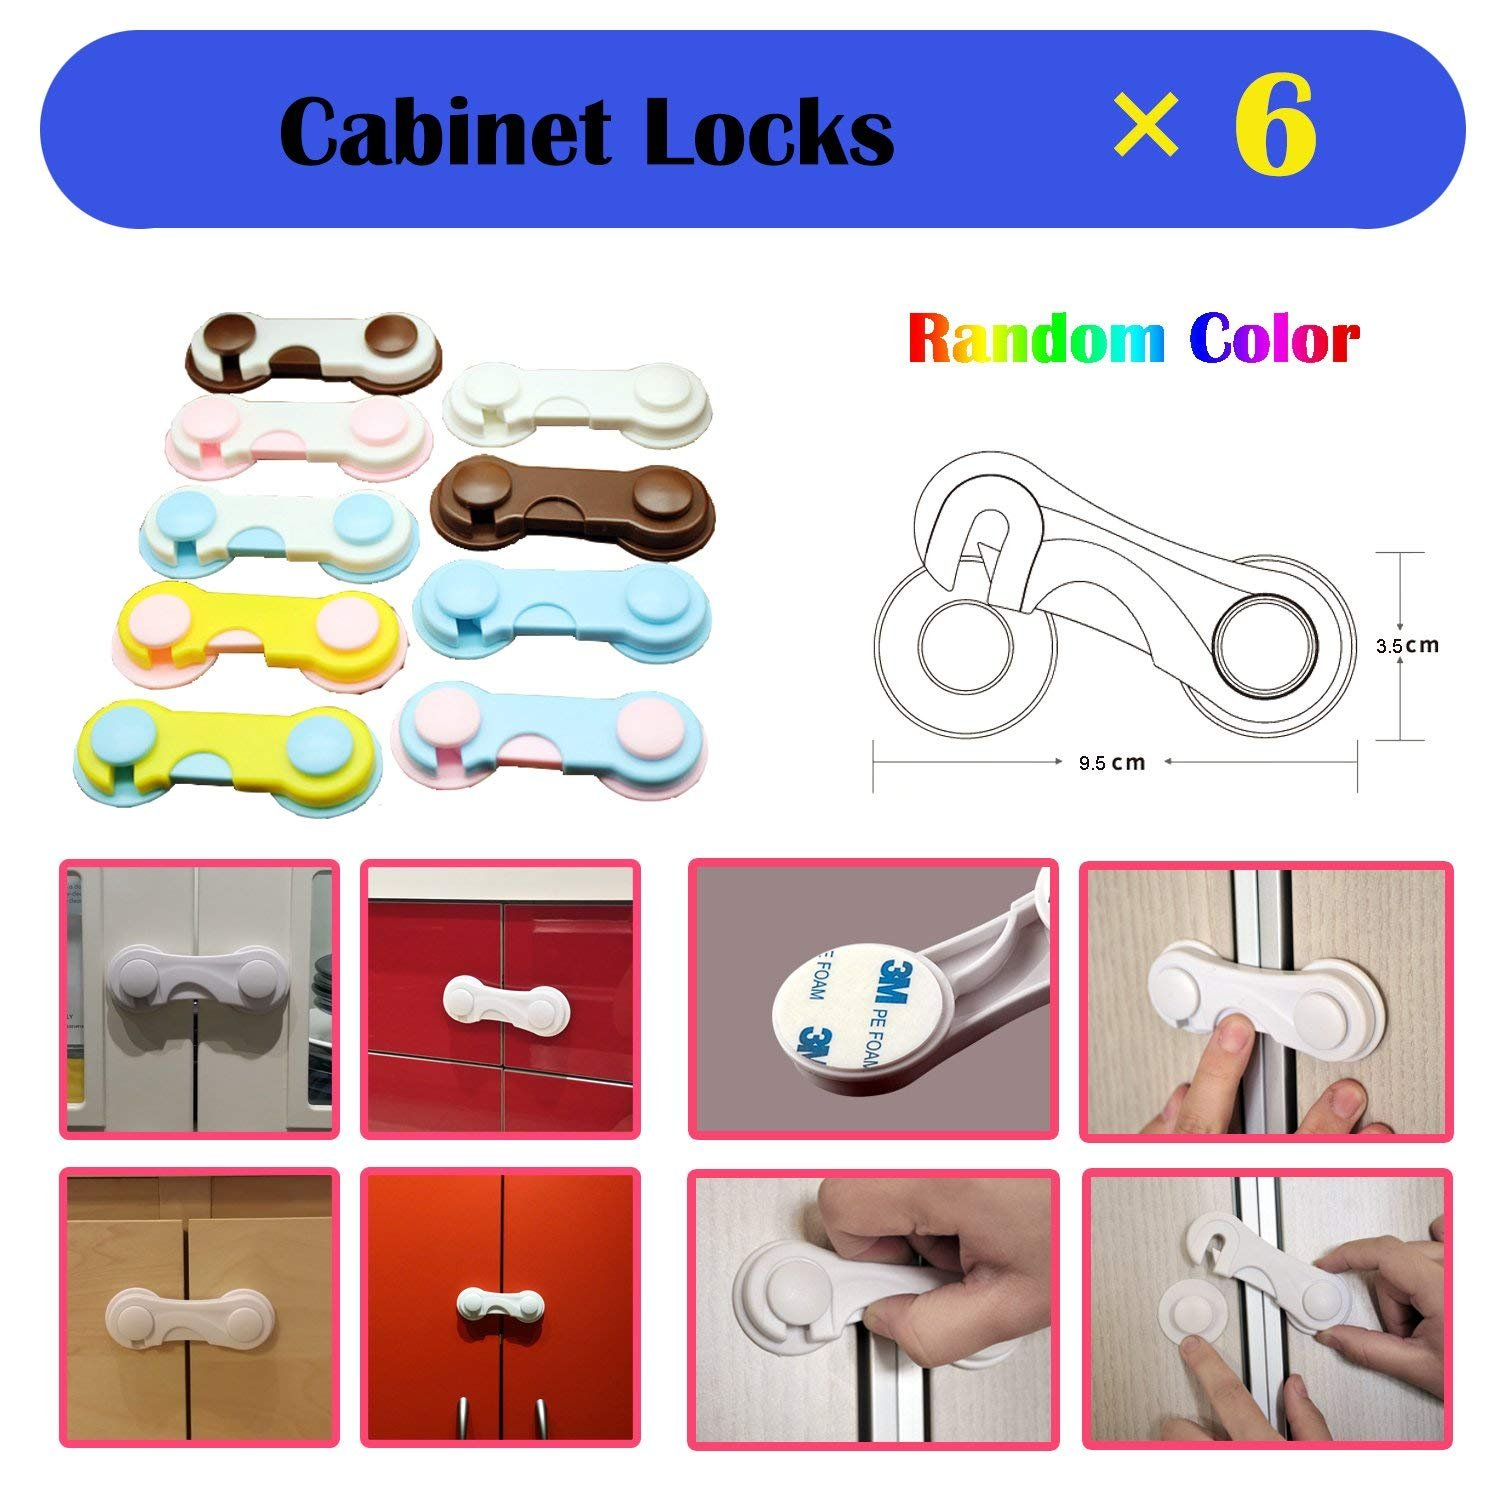 Baby Safety Proofing Kits (56 Pack) 20Pcs Outlet Covers +6Pcs Child Safety Proofing Cabinet Locks+ 20Pcs Corner Protector Edge Guard+ 6Pcs Children Cupboard Locks + 4Pcs Kids Safety Foam Door Stoppers by HOMER (Image #8)